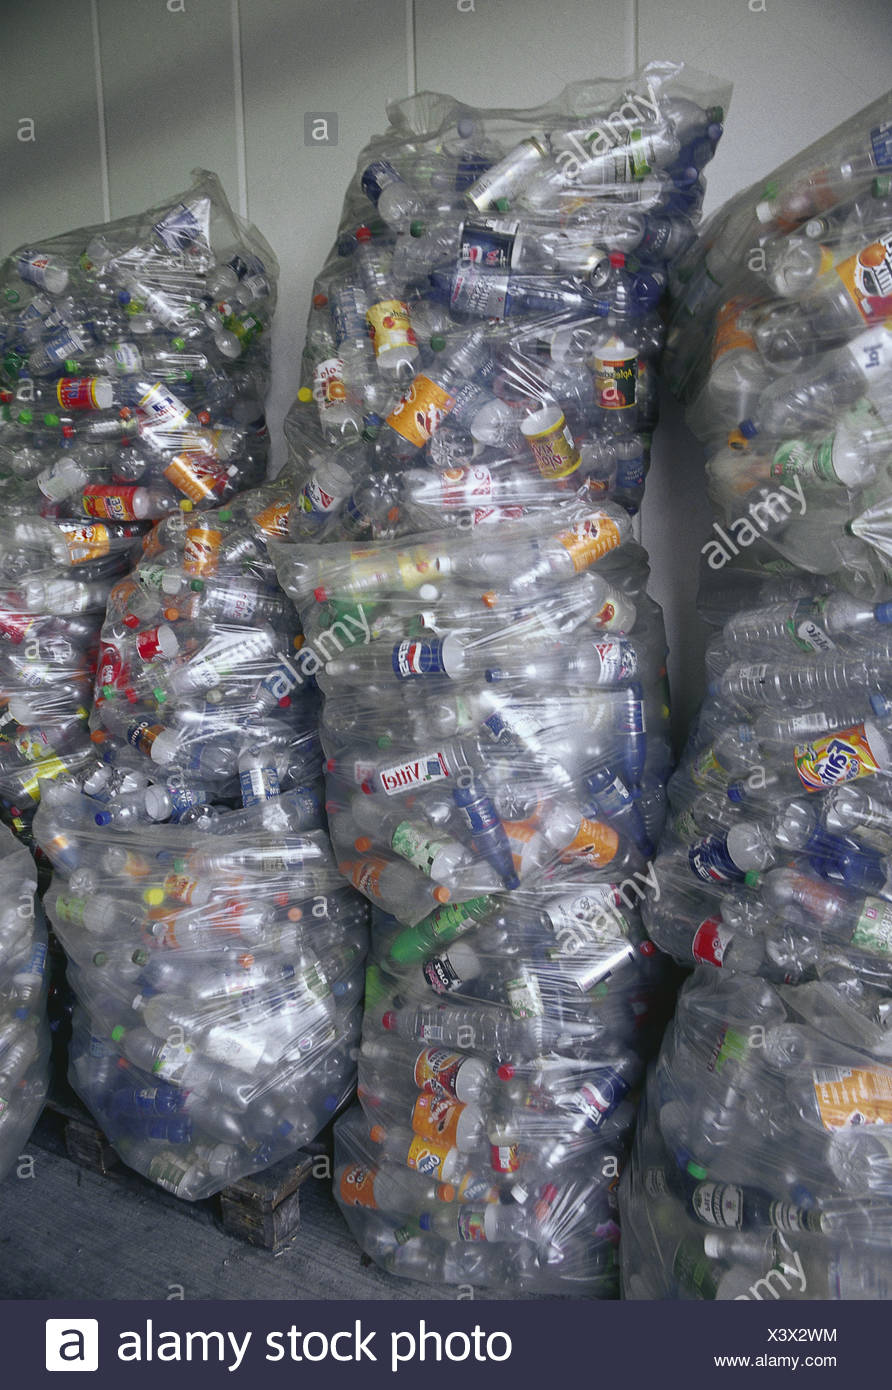 Plastic bags, plastic flasks, drinks cans, blank, accumulatedly, recycling, waste industry, waste recycling, refuse processing, drink flasks, non-returnable bottles, security flasks, flasks, plastic, PET flasks, PET, tins, drink envelopes, transparently, - Stock Image